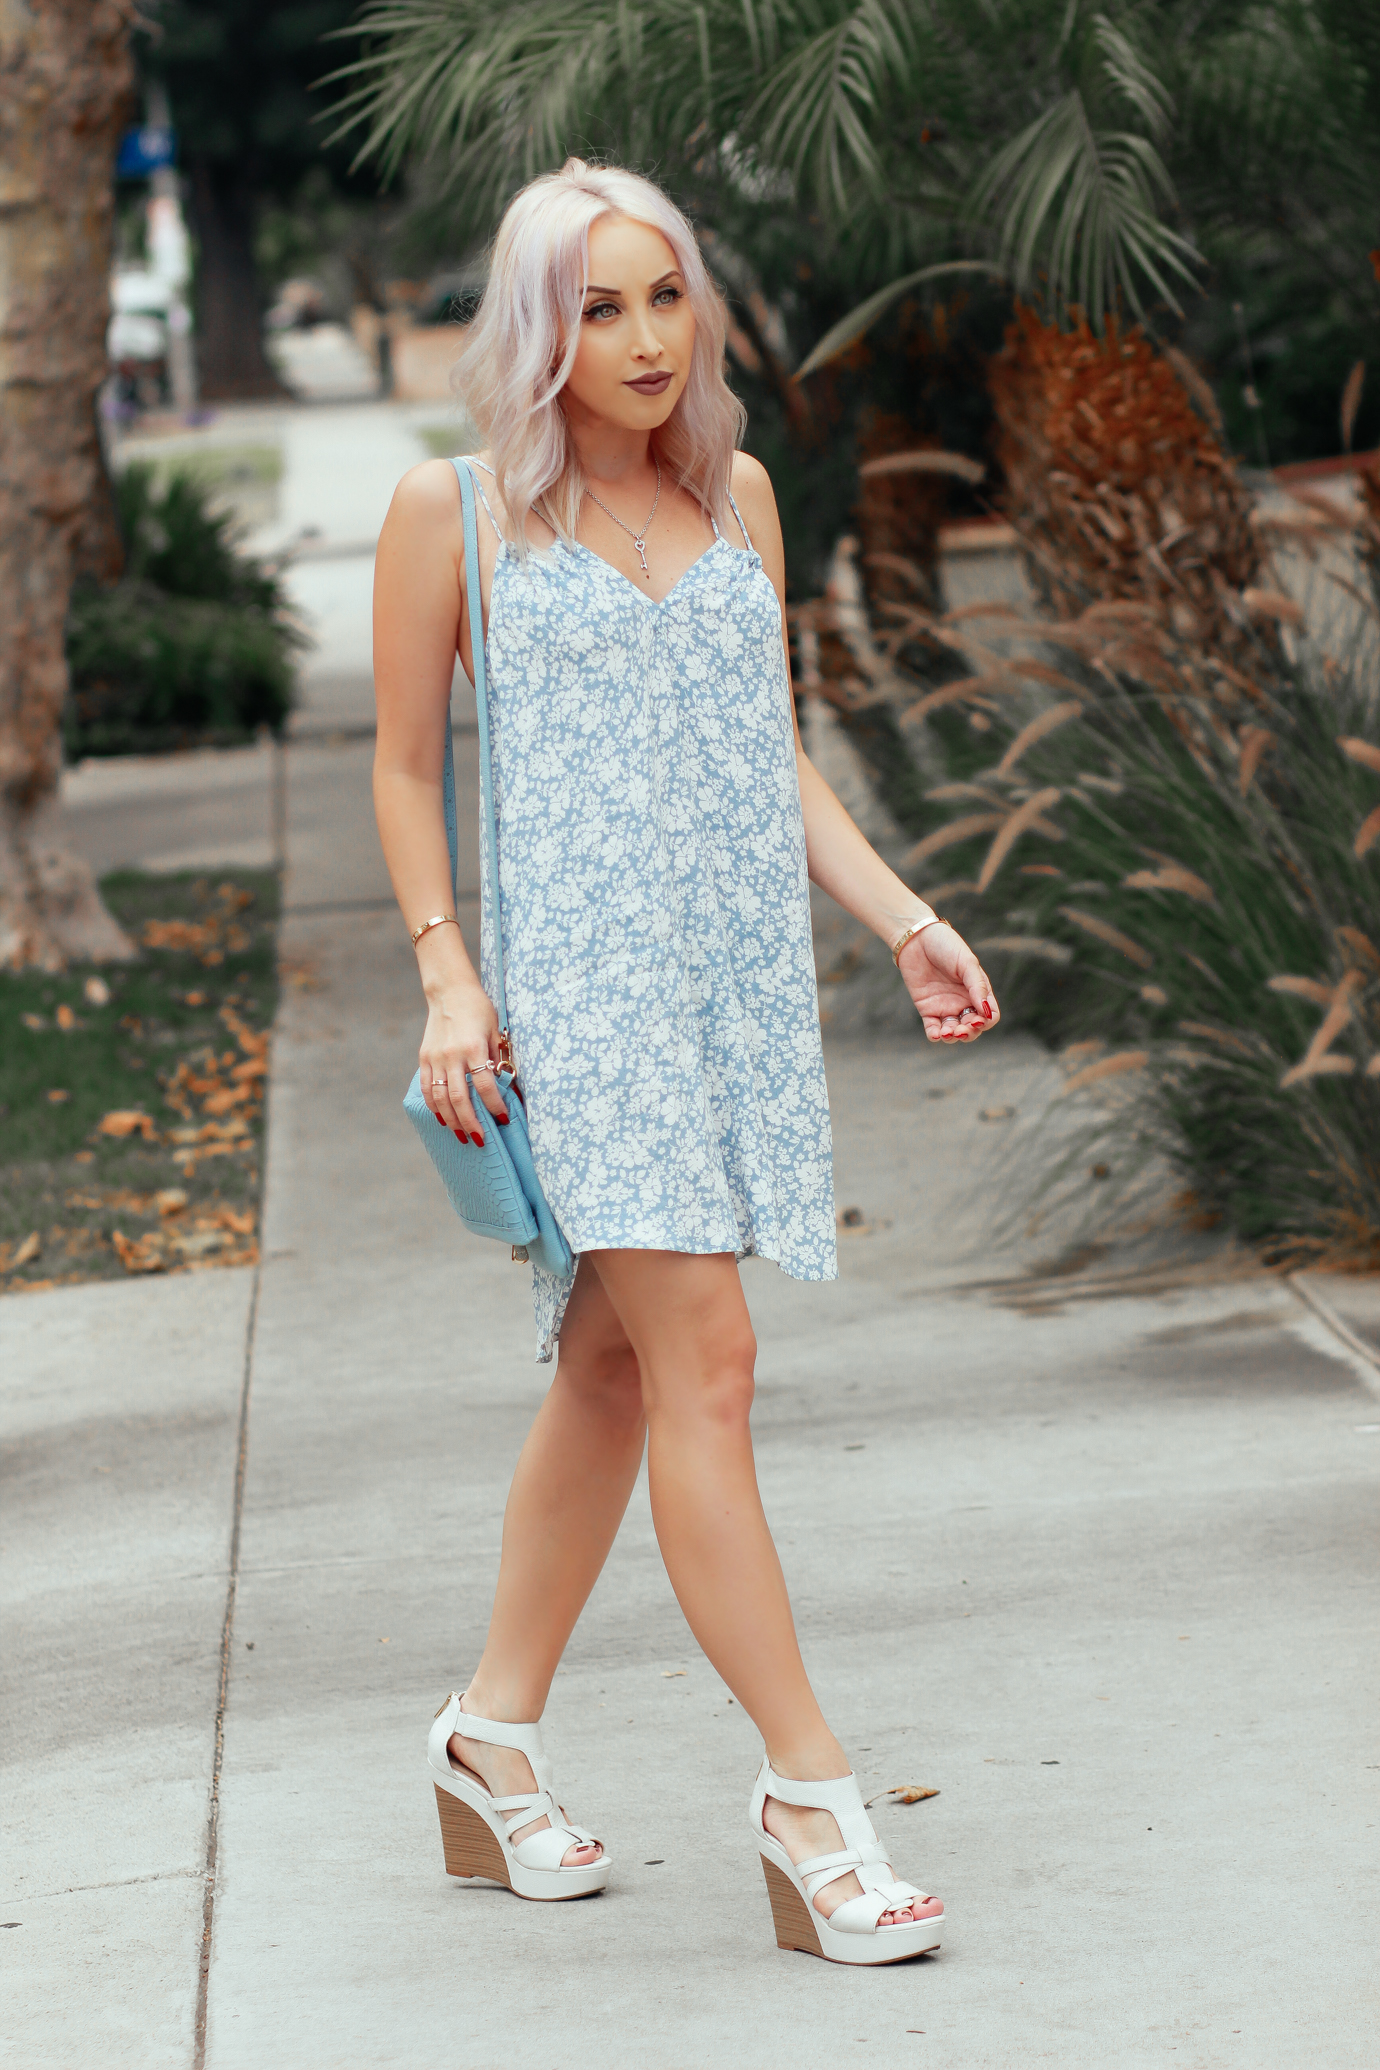 Blondie in the City   The Perfect Summer Dress   Blue and White Flowy Summer Dress